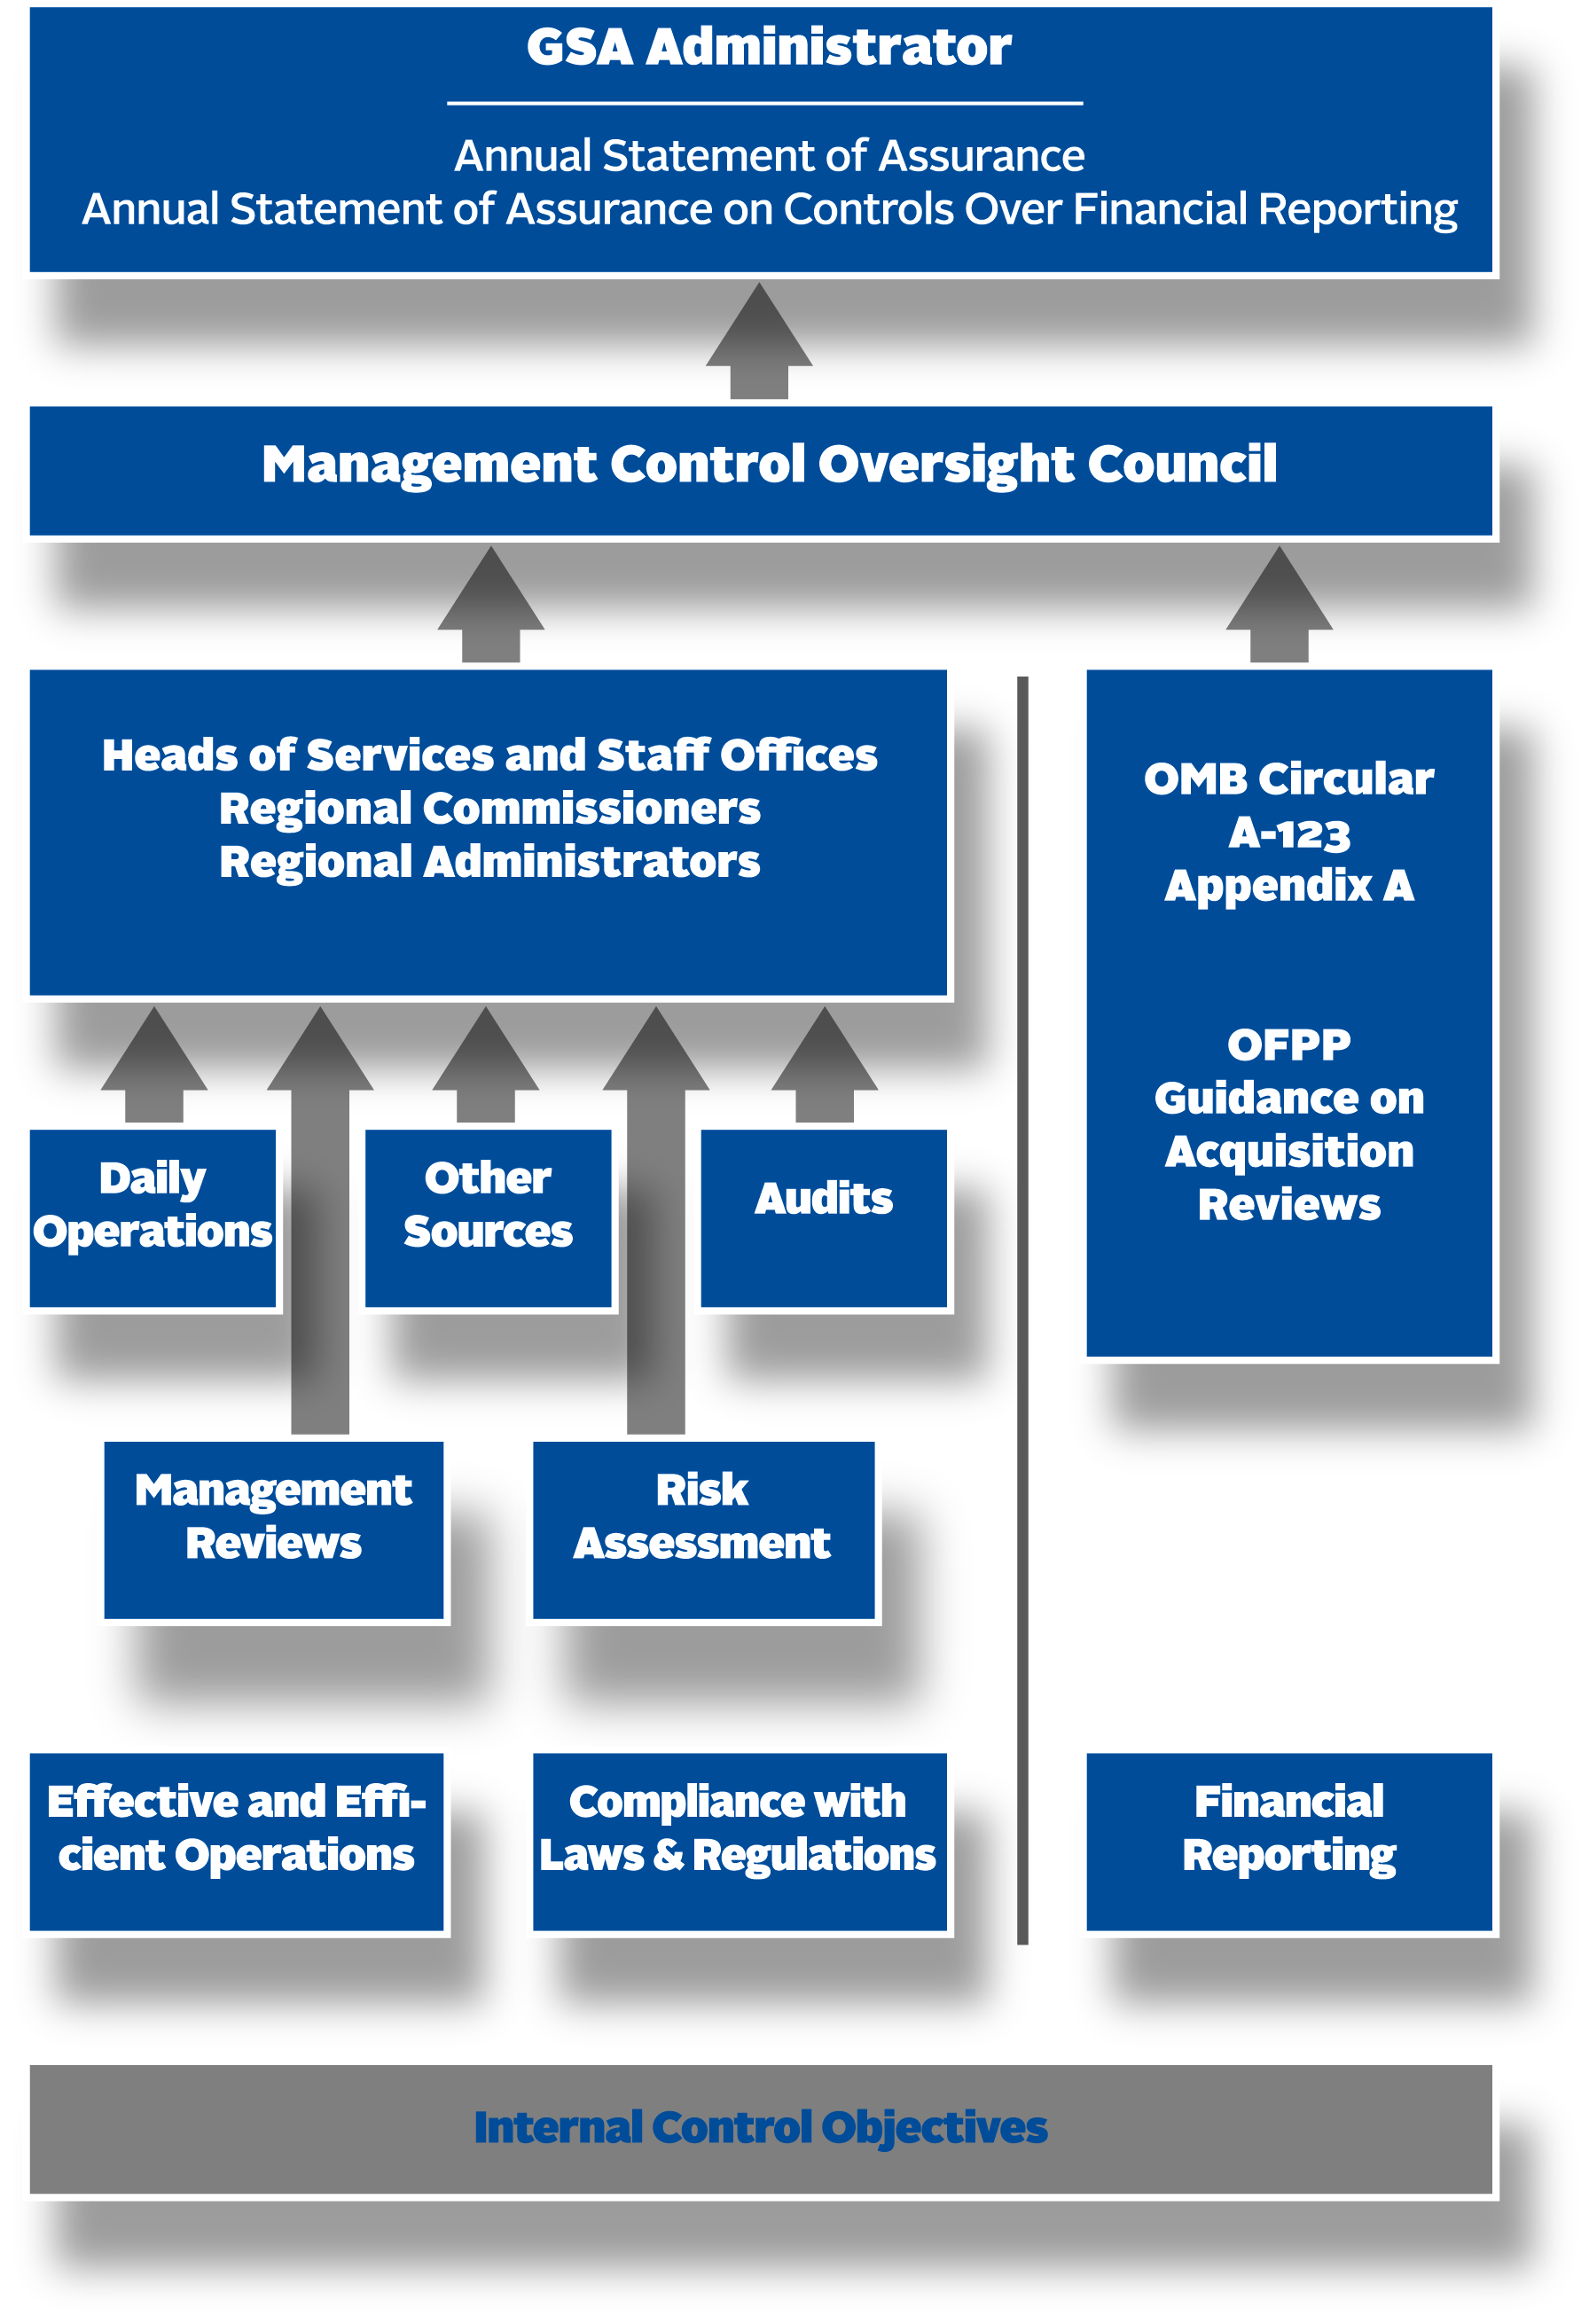 Image of FMFIA Process Sample.  Workflow mentions Internal Control Objectives, Effective and Efficient Operations, Compliance with Laws & Regulations, Financial Reporting. The management reviews, risk assessment, daily opertations, other sources, audits all go through Heads of Services and Staff Offices, Regional Commissioners, Regional Administrators, to the Management Control Oversite Council. WIth the OMB Circular A123, Appendix A, OFPP Guidance on Acquisition Reviews also going to the Management Control Oversite Council. From the Management Control Oversite Council it goes to the GSA Administrator to become Annual Statement of Assurance and Annual Statement of Assurance on Controls over Financial Reporting